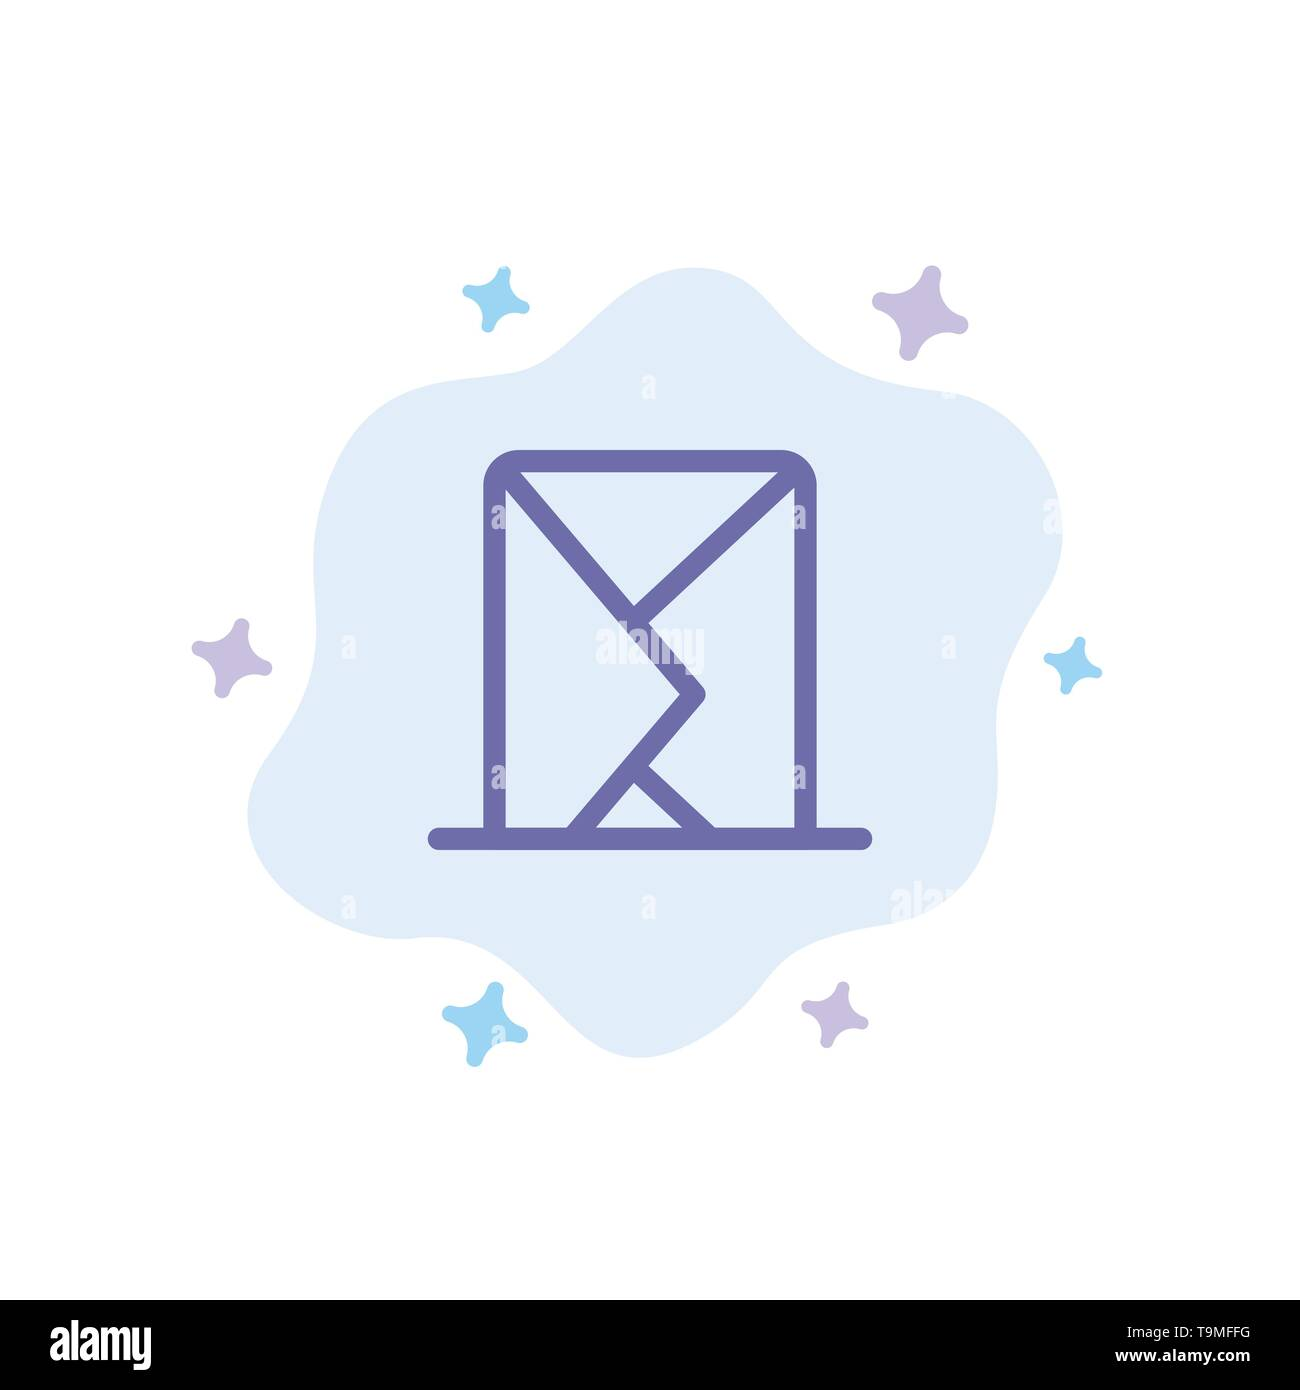 Email, Envelope, Mail, Message, Sent Blue Icon on Abstract Cloud Background - Stock Image